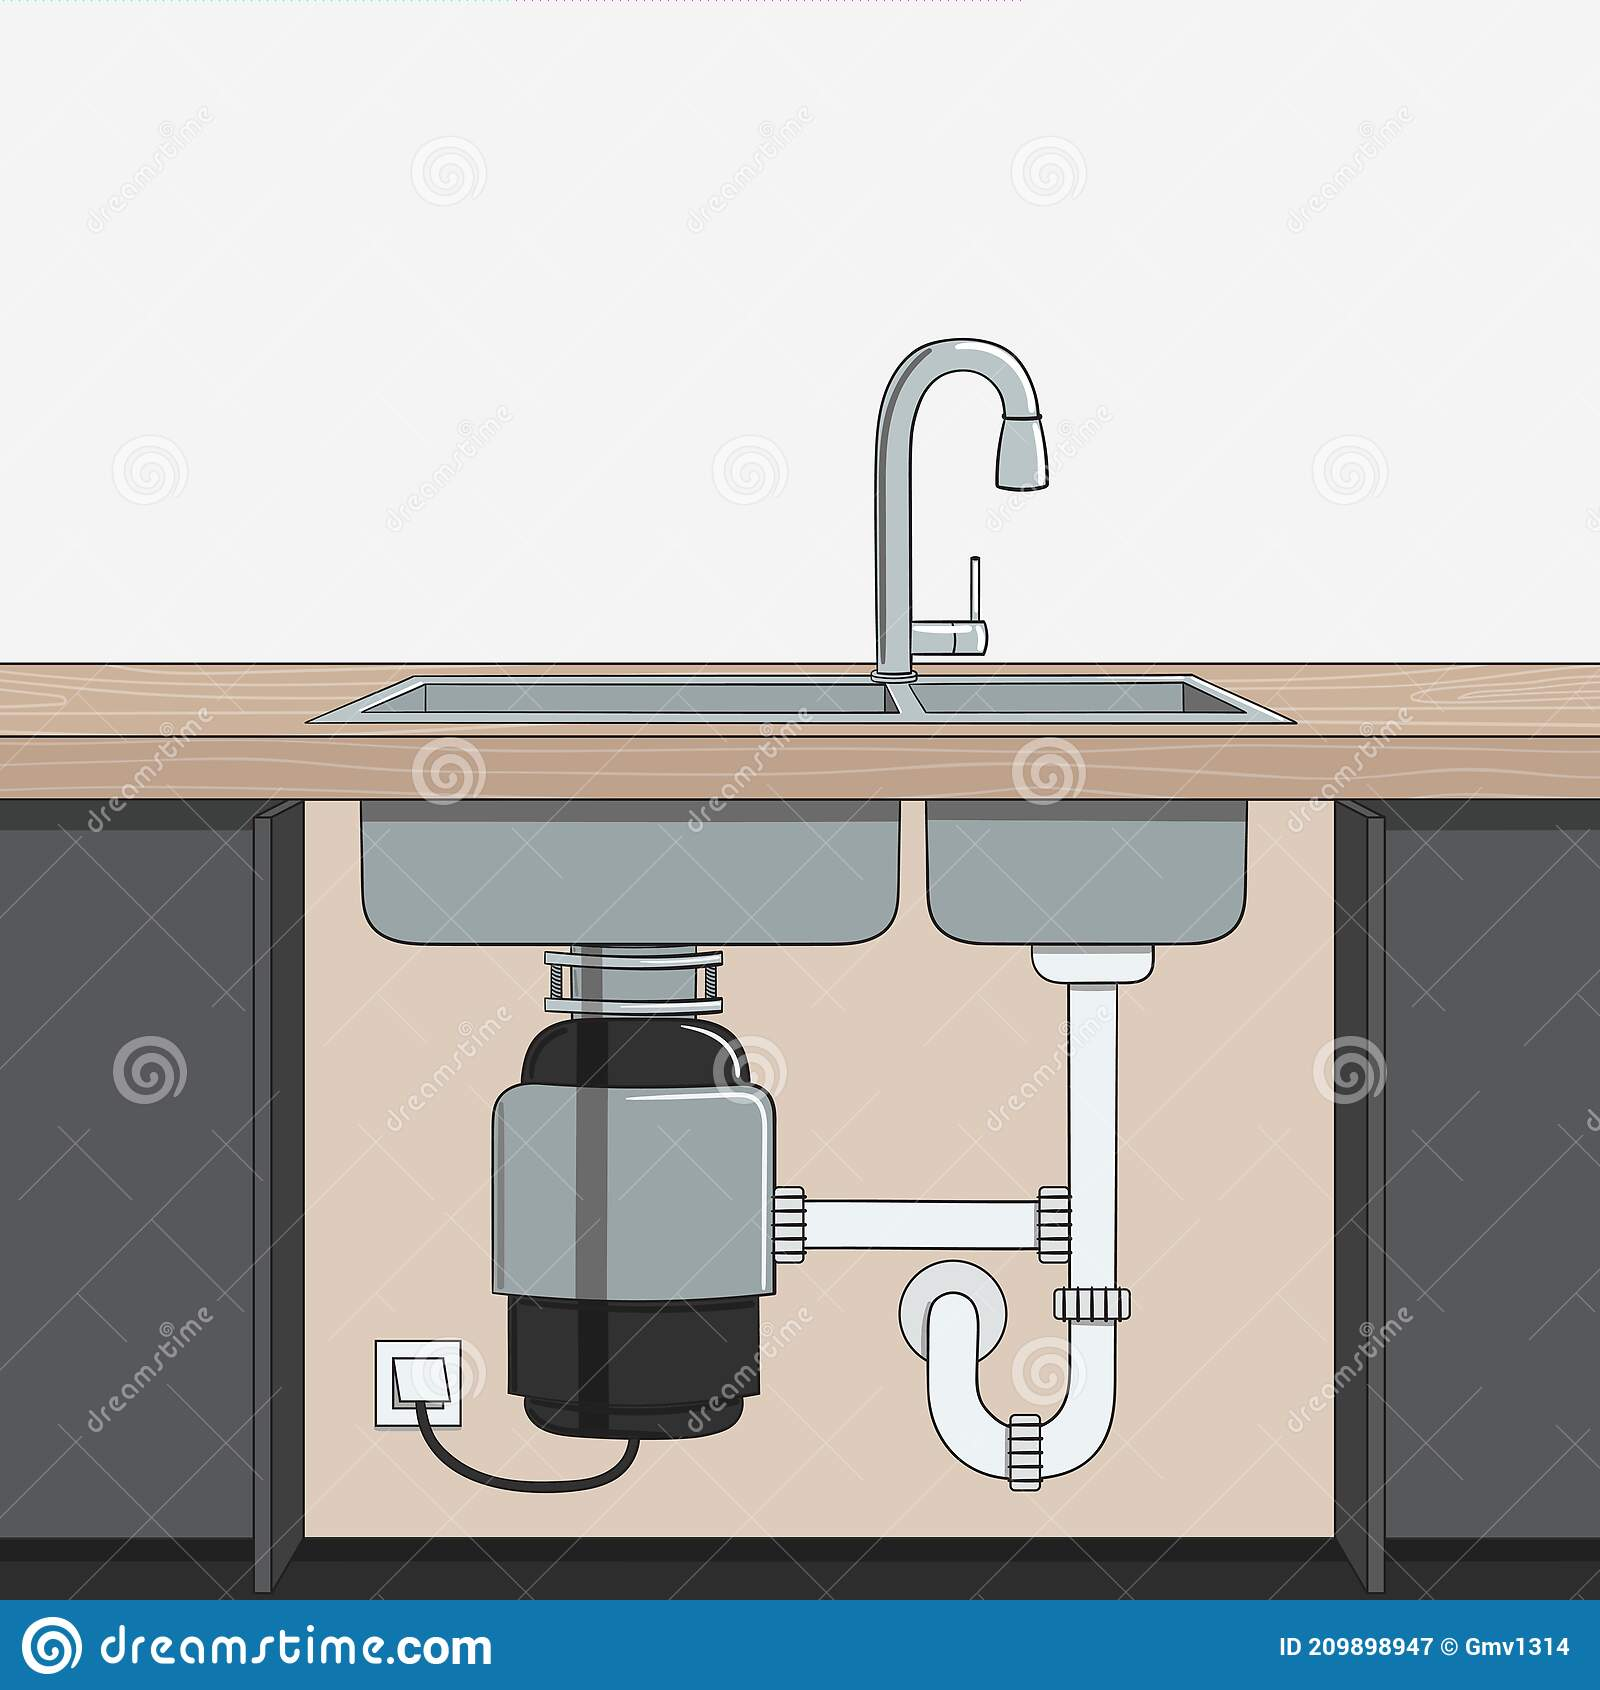 food waste disposer installed under kitchen sink home garbage disposal kitchen interior recycling organic waste sustainable stock vector illustration of garbage home 209898947